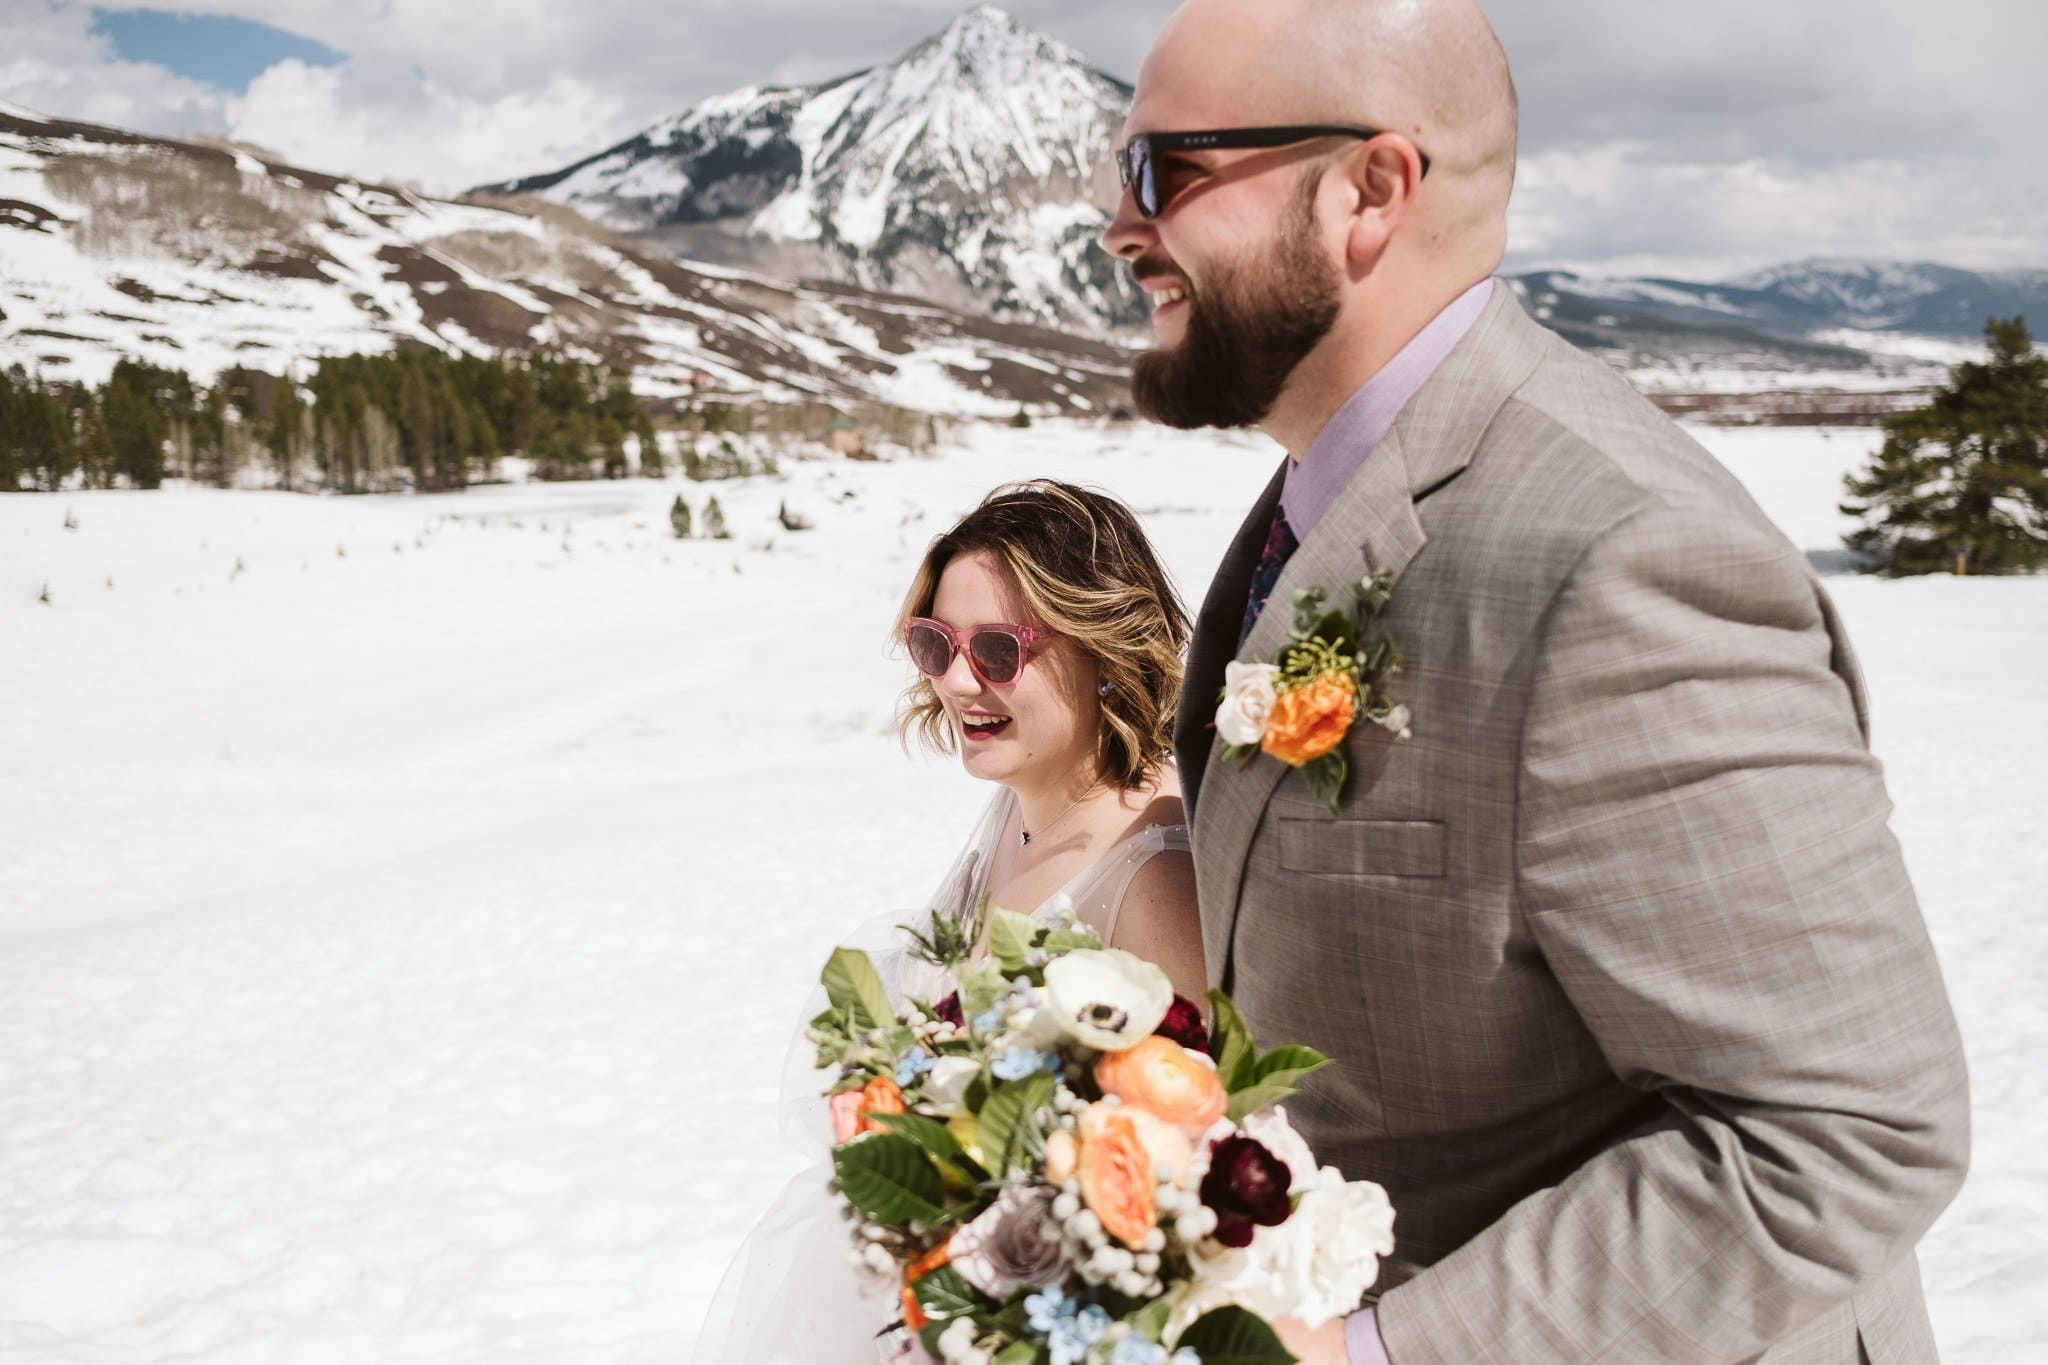 Bride and groom hiking in snow wearing sunglasses, Crested Butte elopement in winter